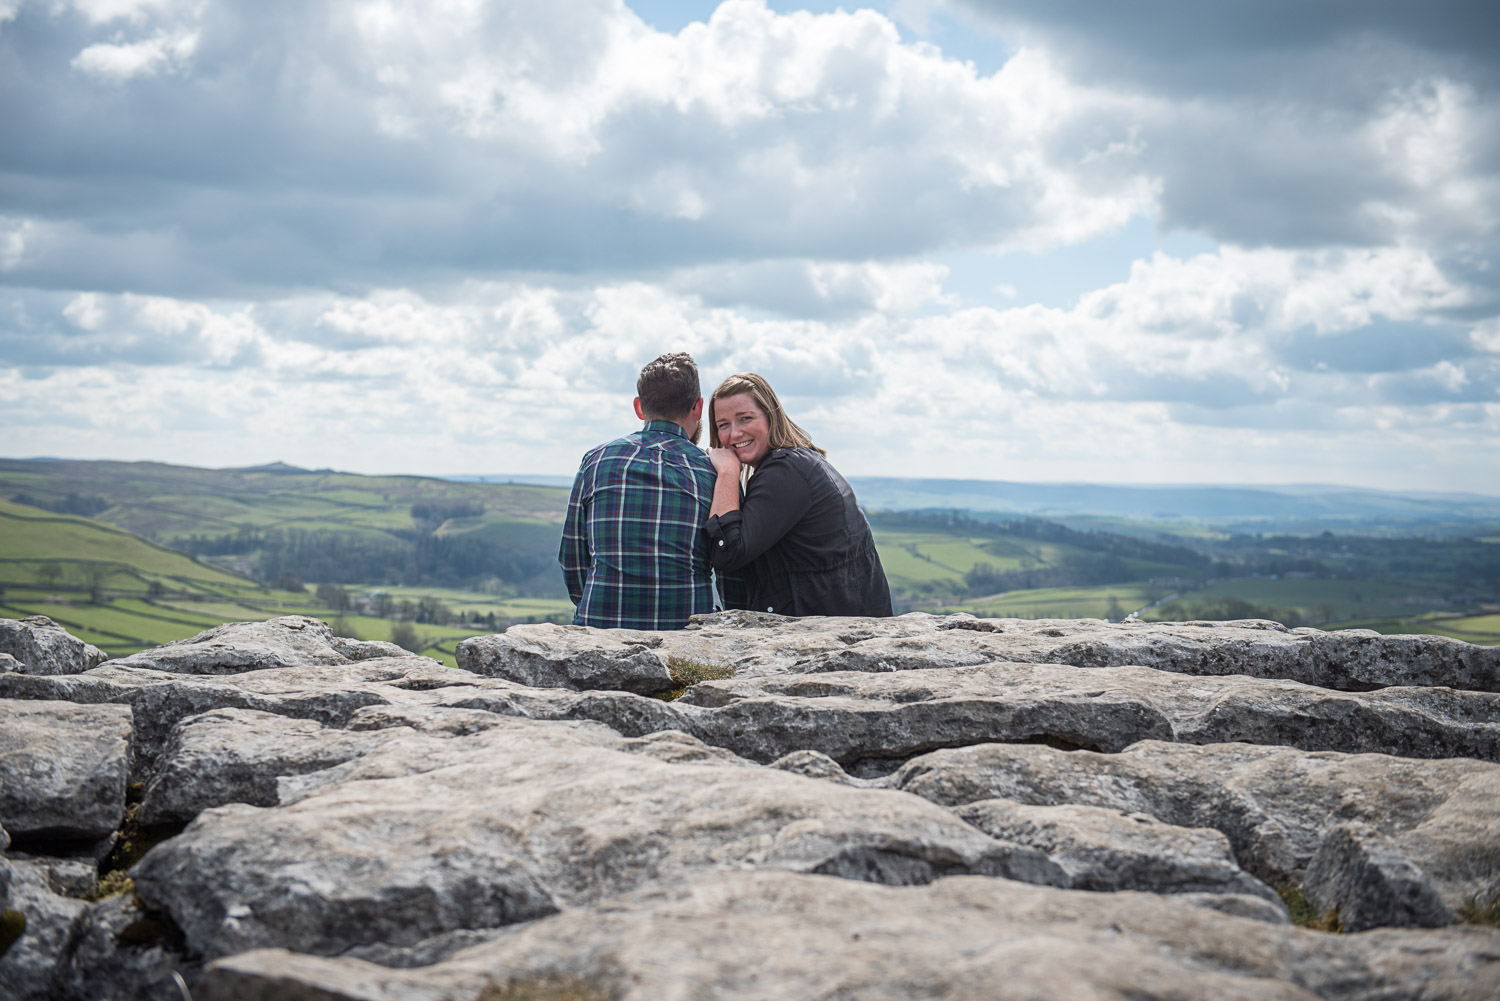 Copy of engagement photo shoot at Malham cove